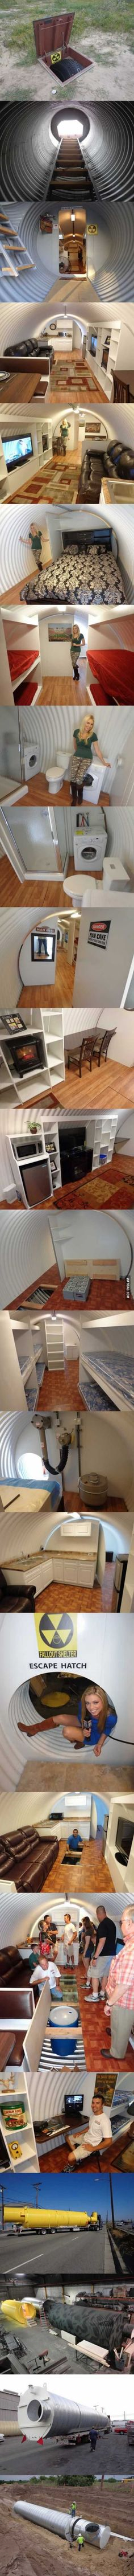 Survival Shelter : A fall-out shelter that is better than people's houses